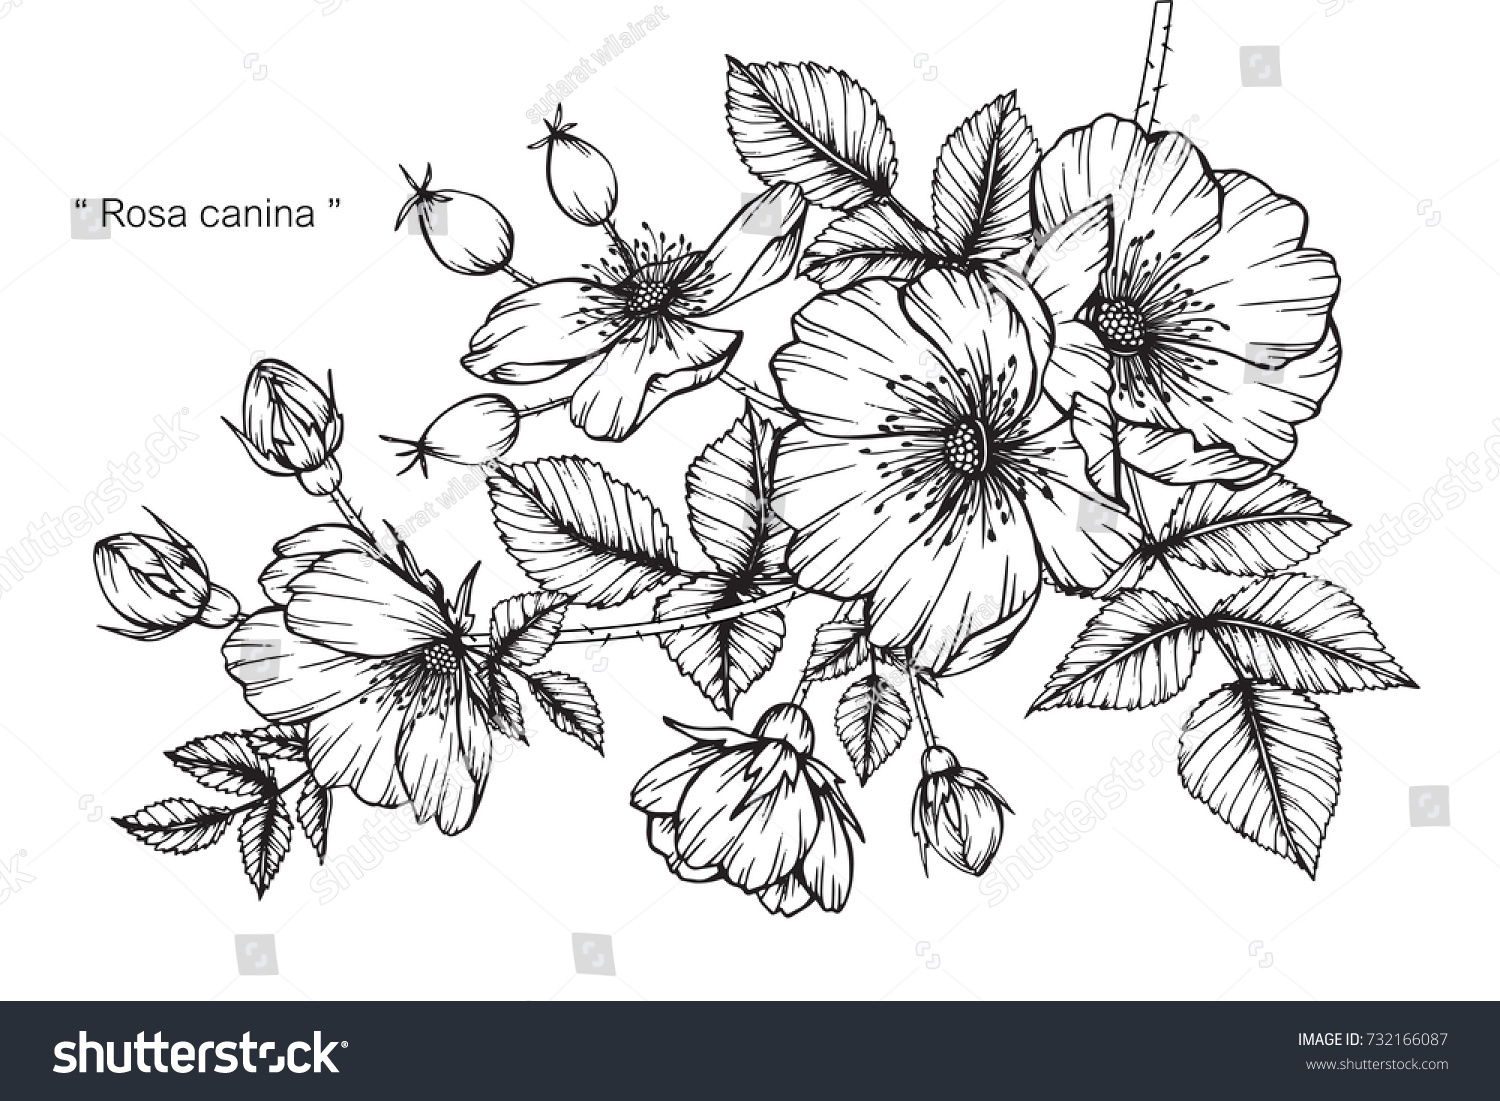 Hand Drawing Sketch Rosa Canina Flower Stock Vector Royalty Free